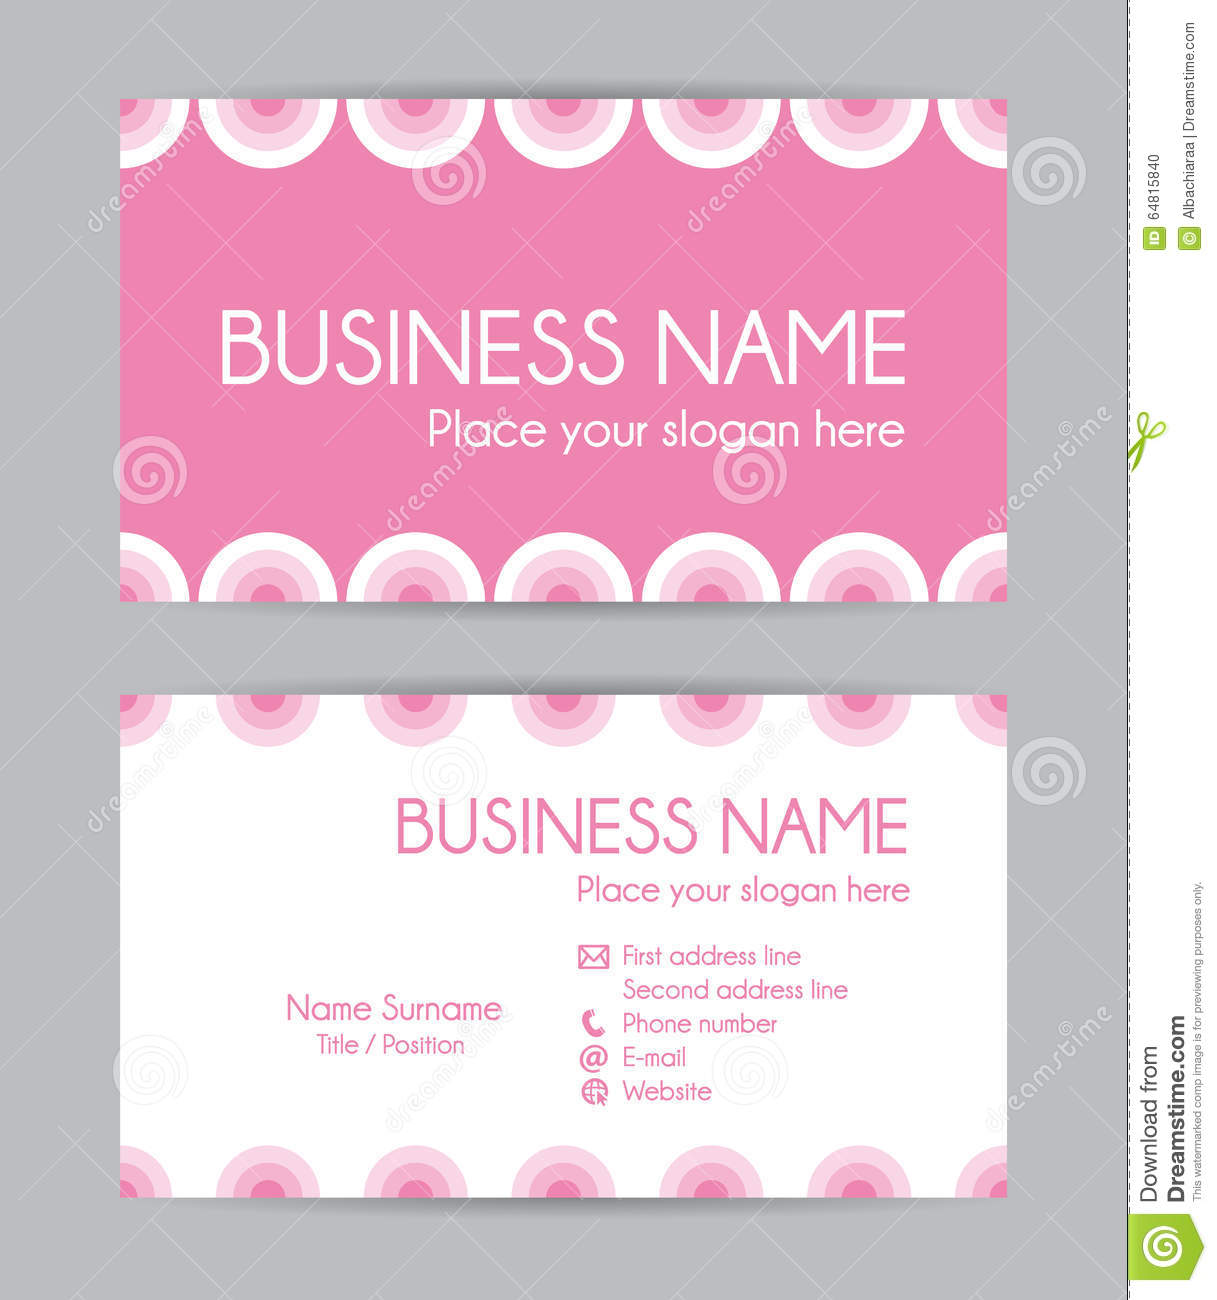 Sweet Graphic Business Card Design. Front And Back. Stock Vector ...